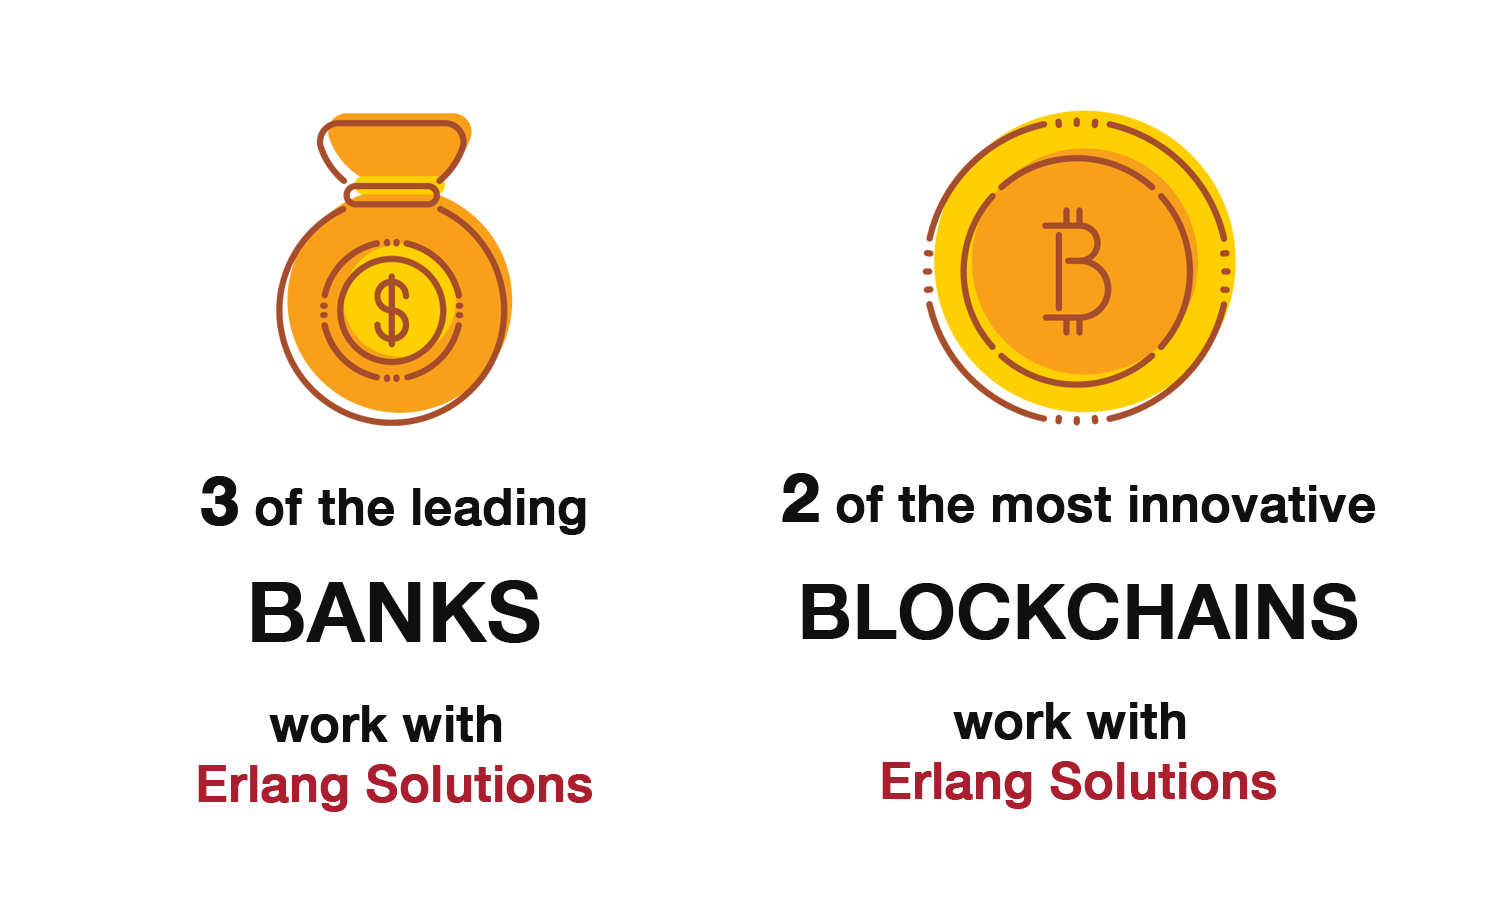 Finance & Blockchain leaders work with Erlang Solutions